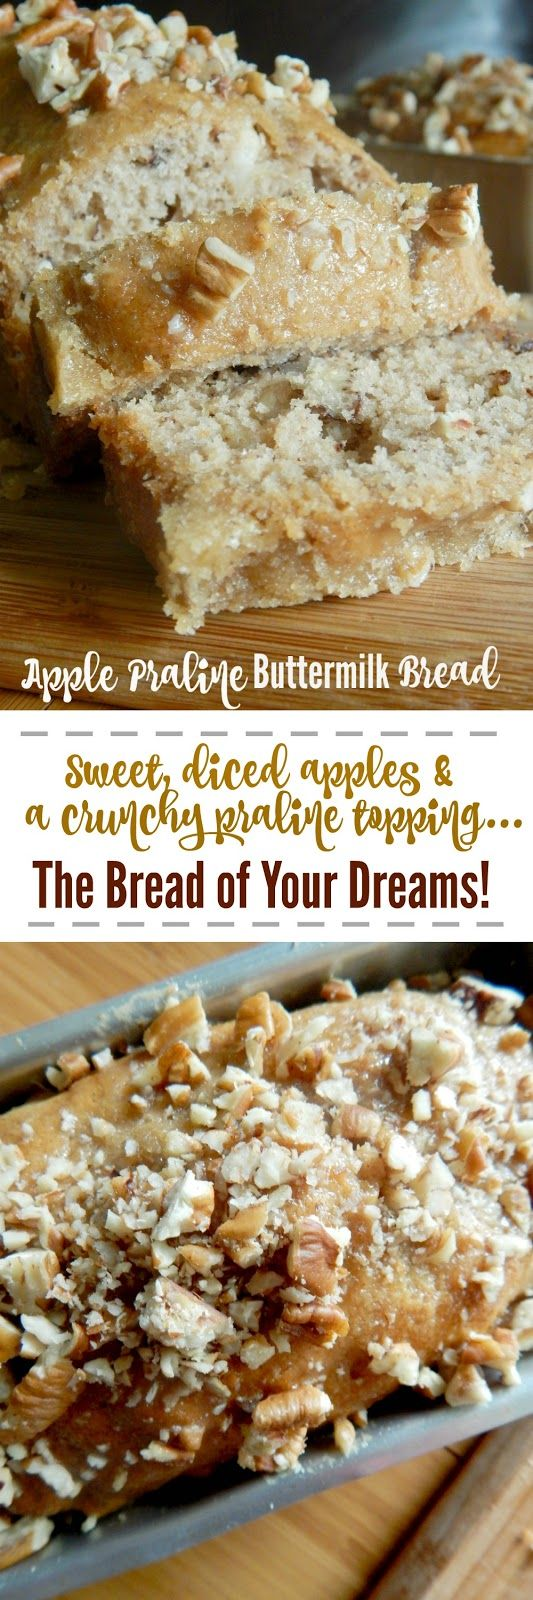 Apple Praline Buttermilk Bread...this sweet bread gets even better when you pour the HOT praline topping over the finished product.  It gets crunchy and so good!